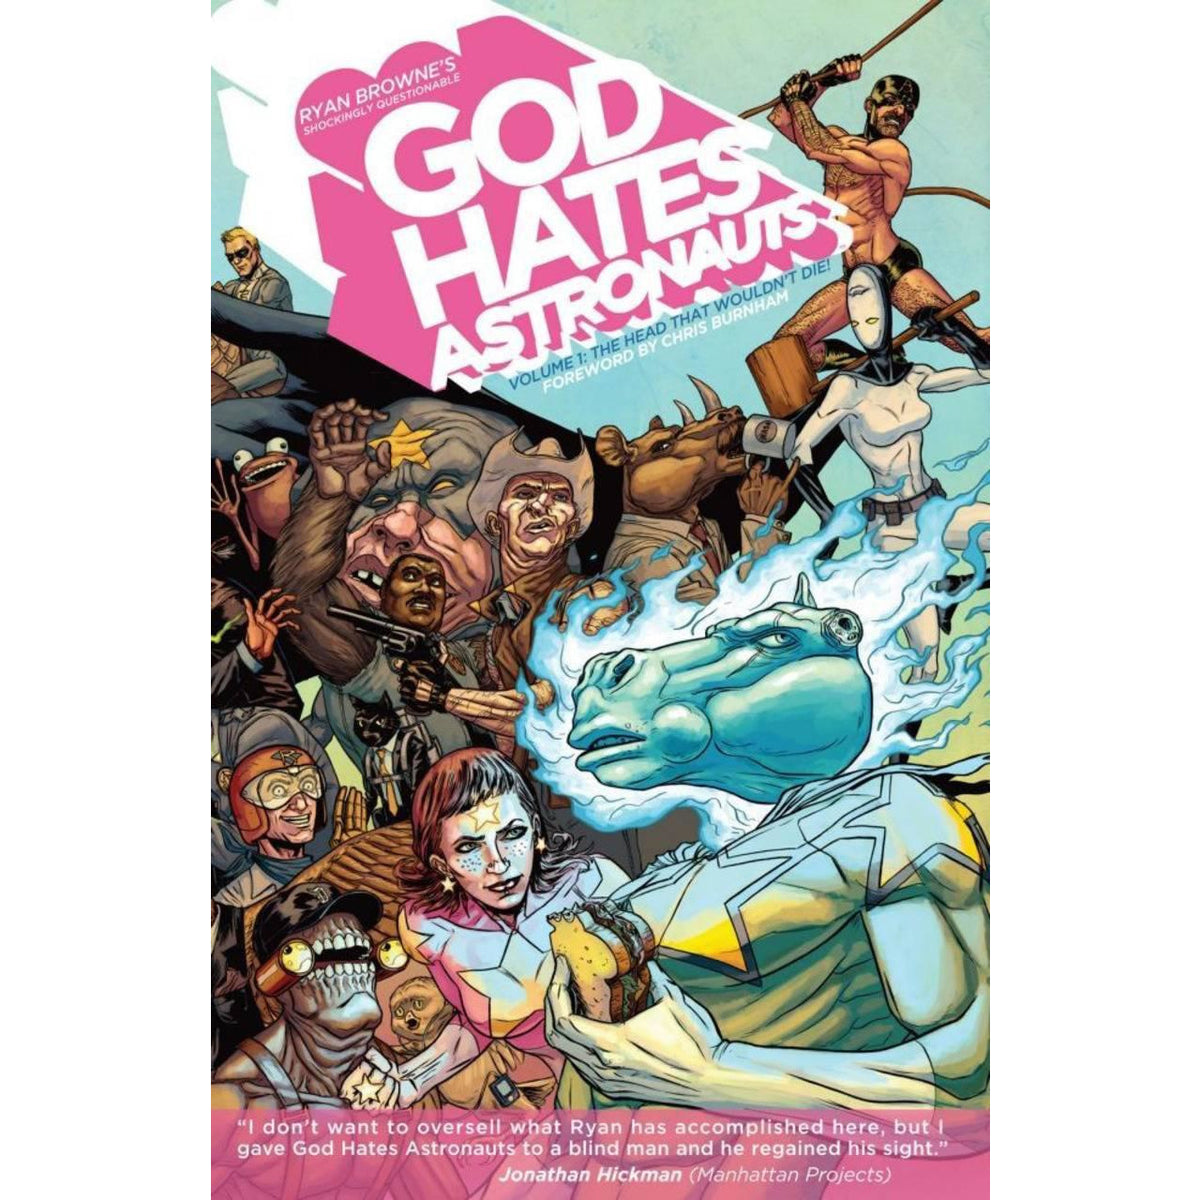 GOD HATES ASTRONAUTS VOLUME 01: THE HEAD THAT WOULDN'T DIE